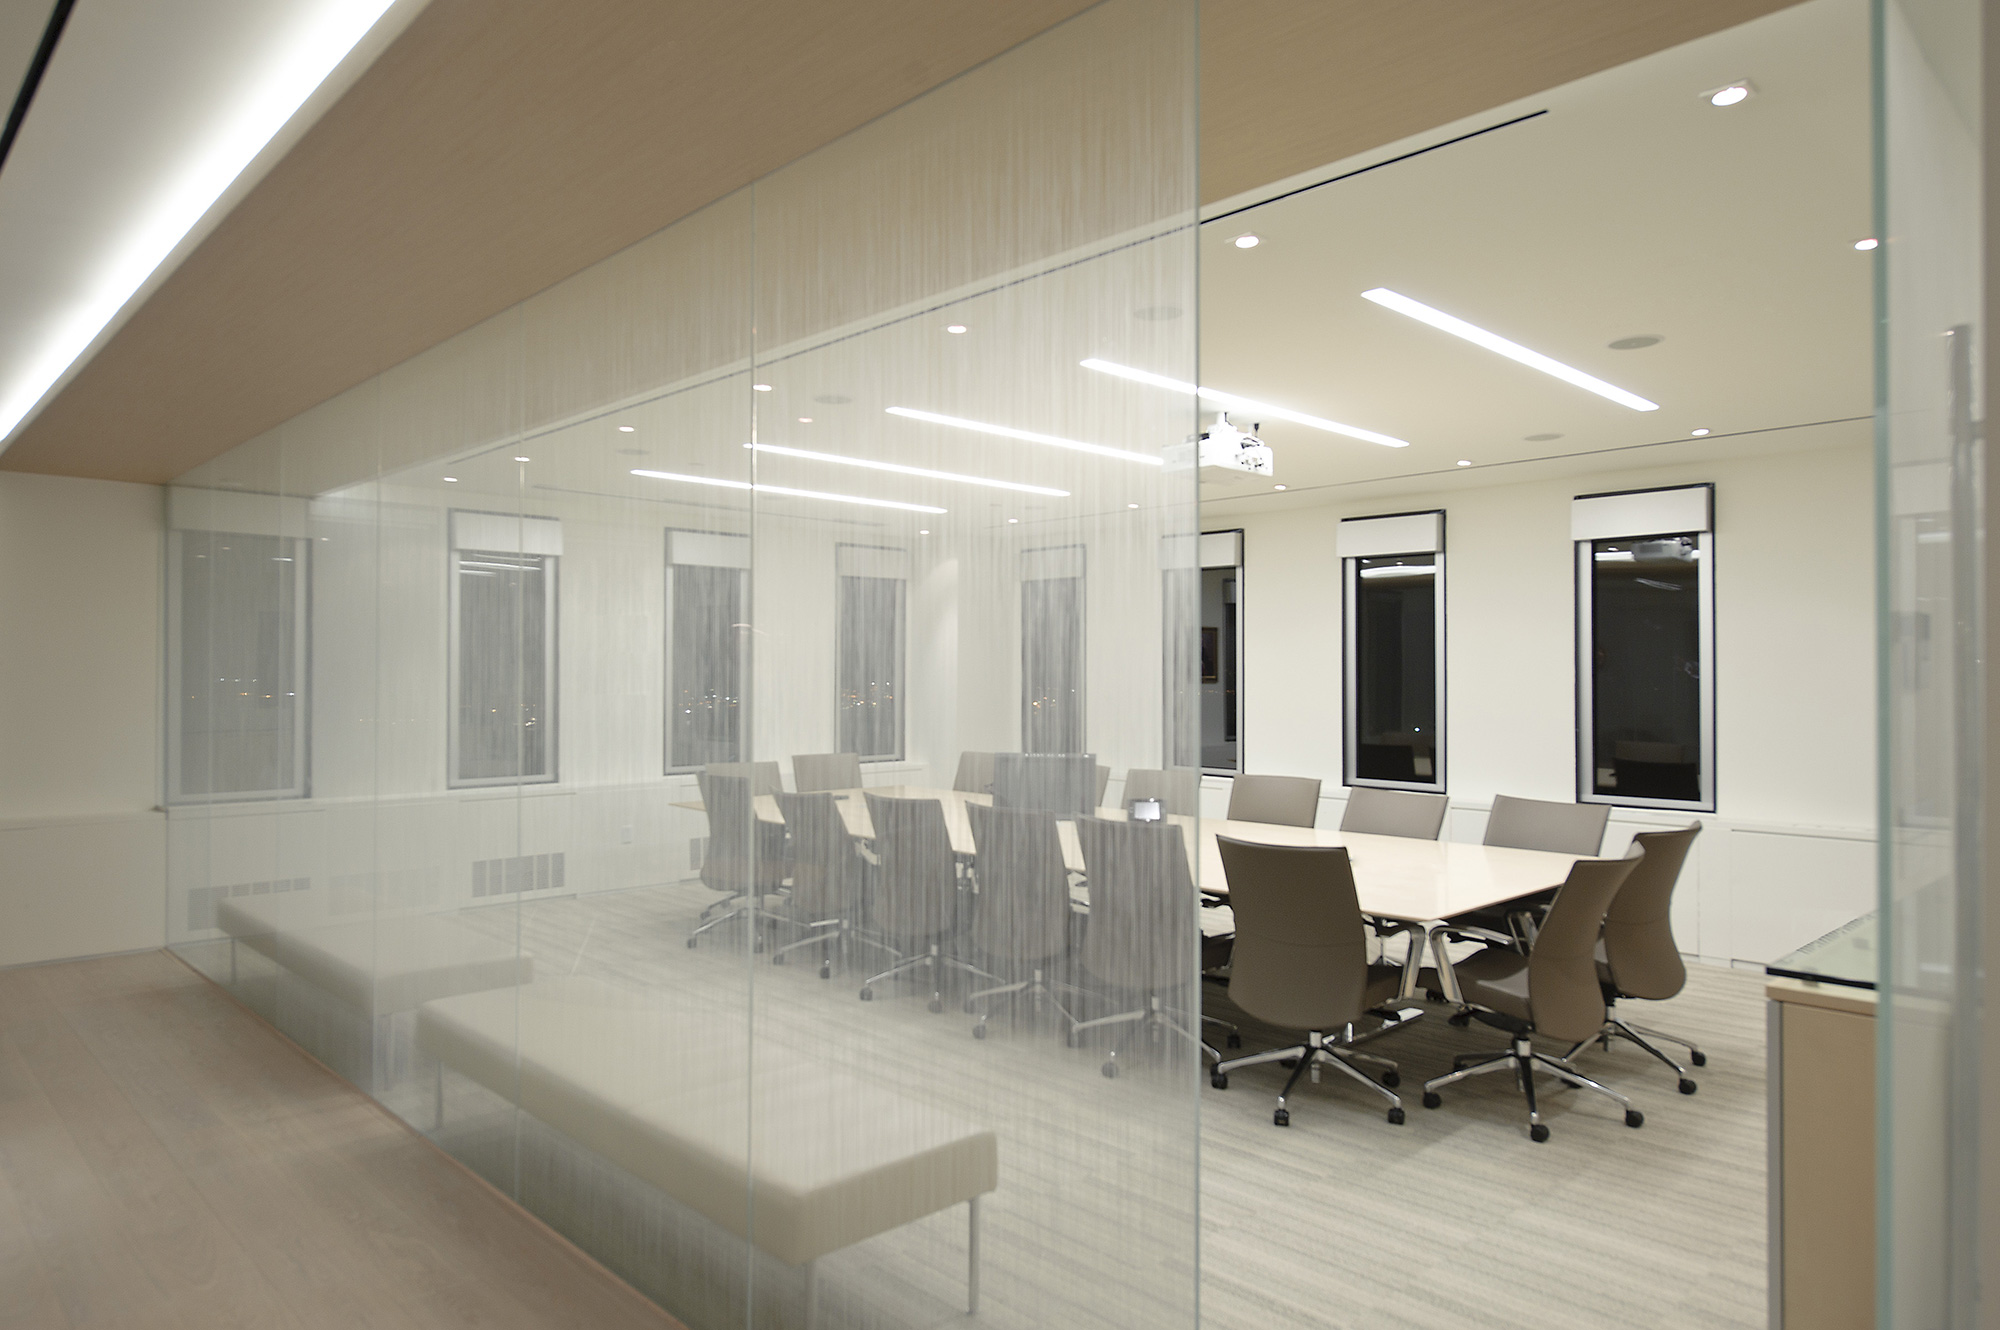 interior-design-financial-office-boardroom.jpg